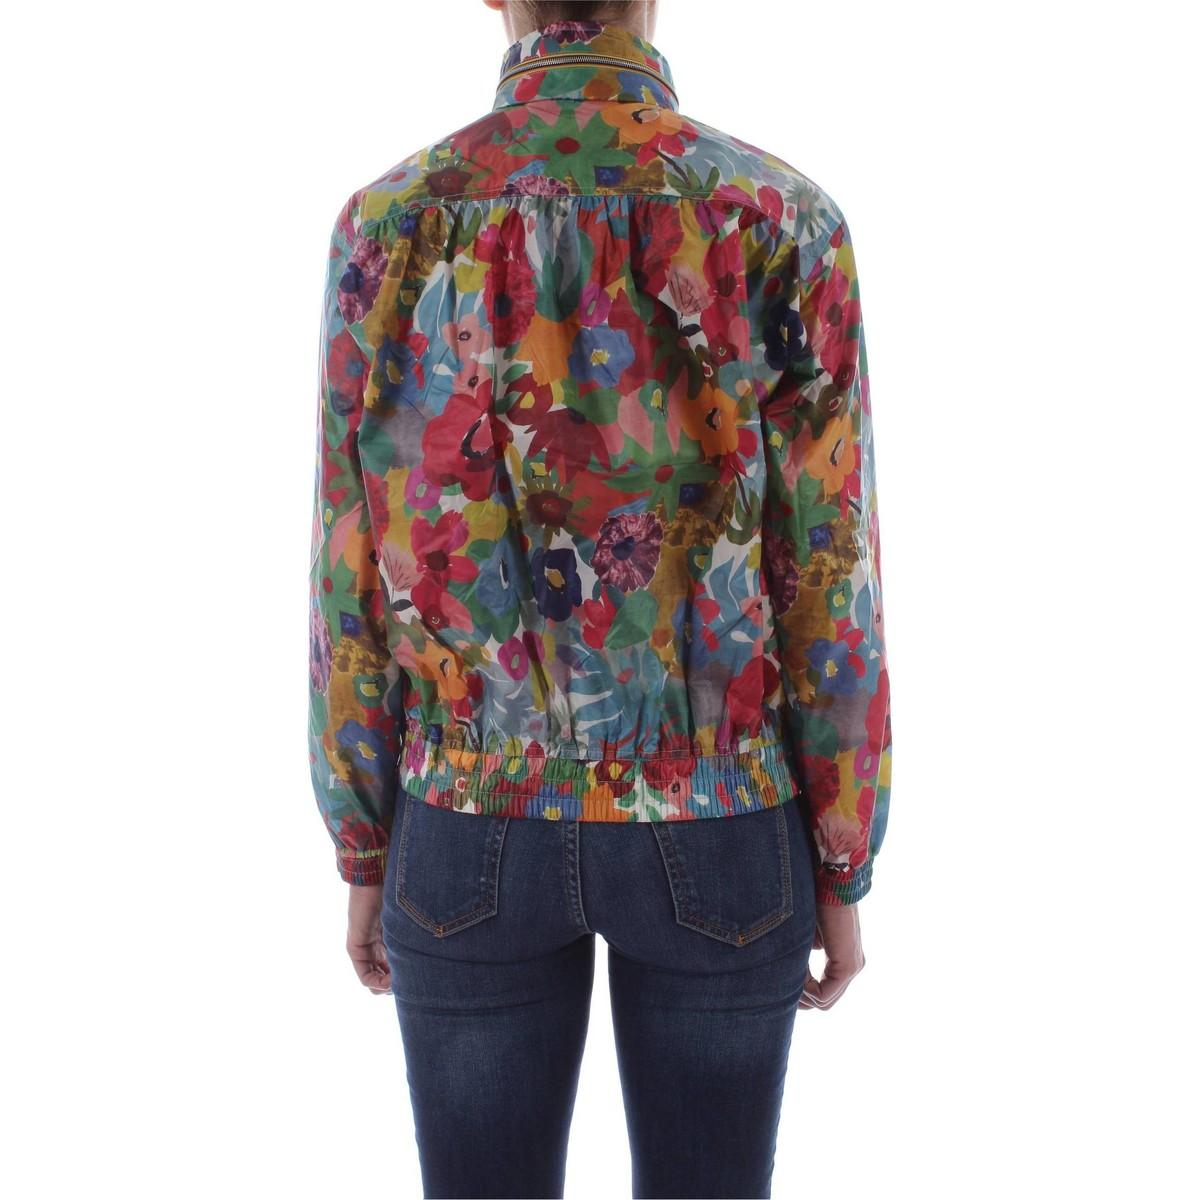 ARLETTE LIGHT SHIRT GRAPHIC 903 Blouson K-Way